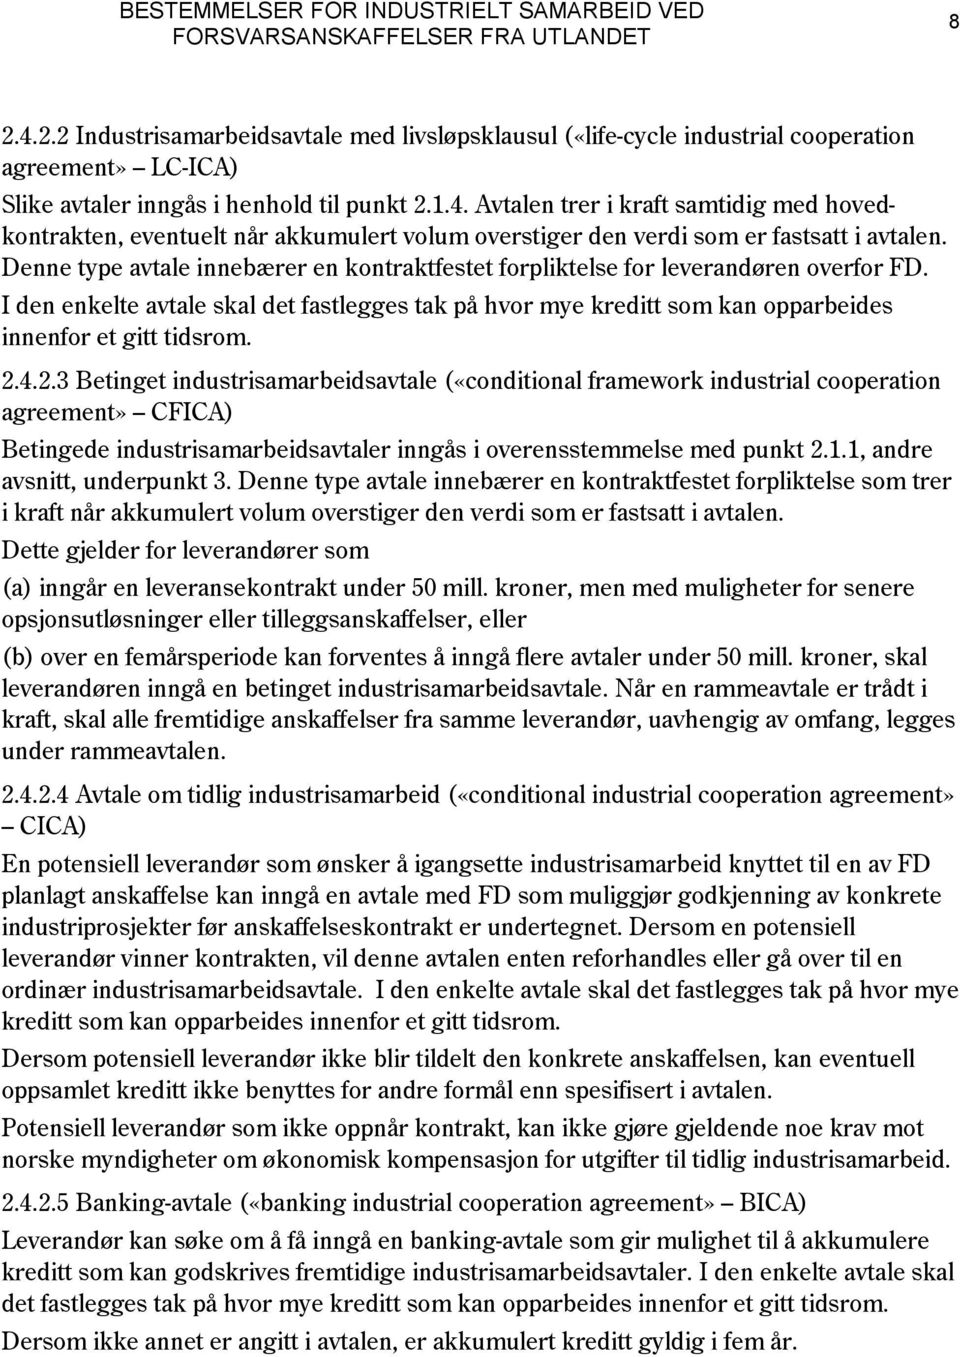 2.4.2.3 Betinget industrisamarbeidsavtale («conditional framework industrial cooperation agreement» CFICA) Betingede industrisamarbeidsavtaler inngås i overensstemmelse med punkt 2.1.